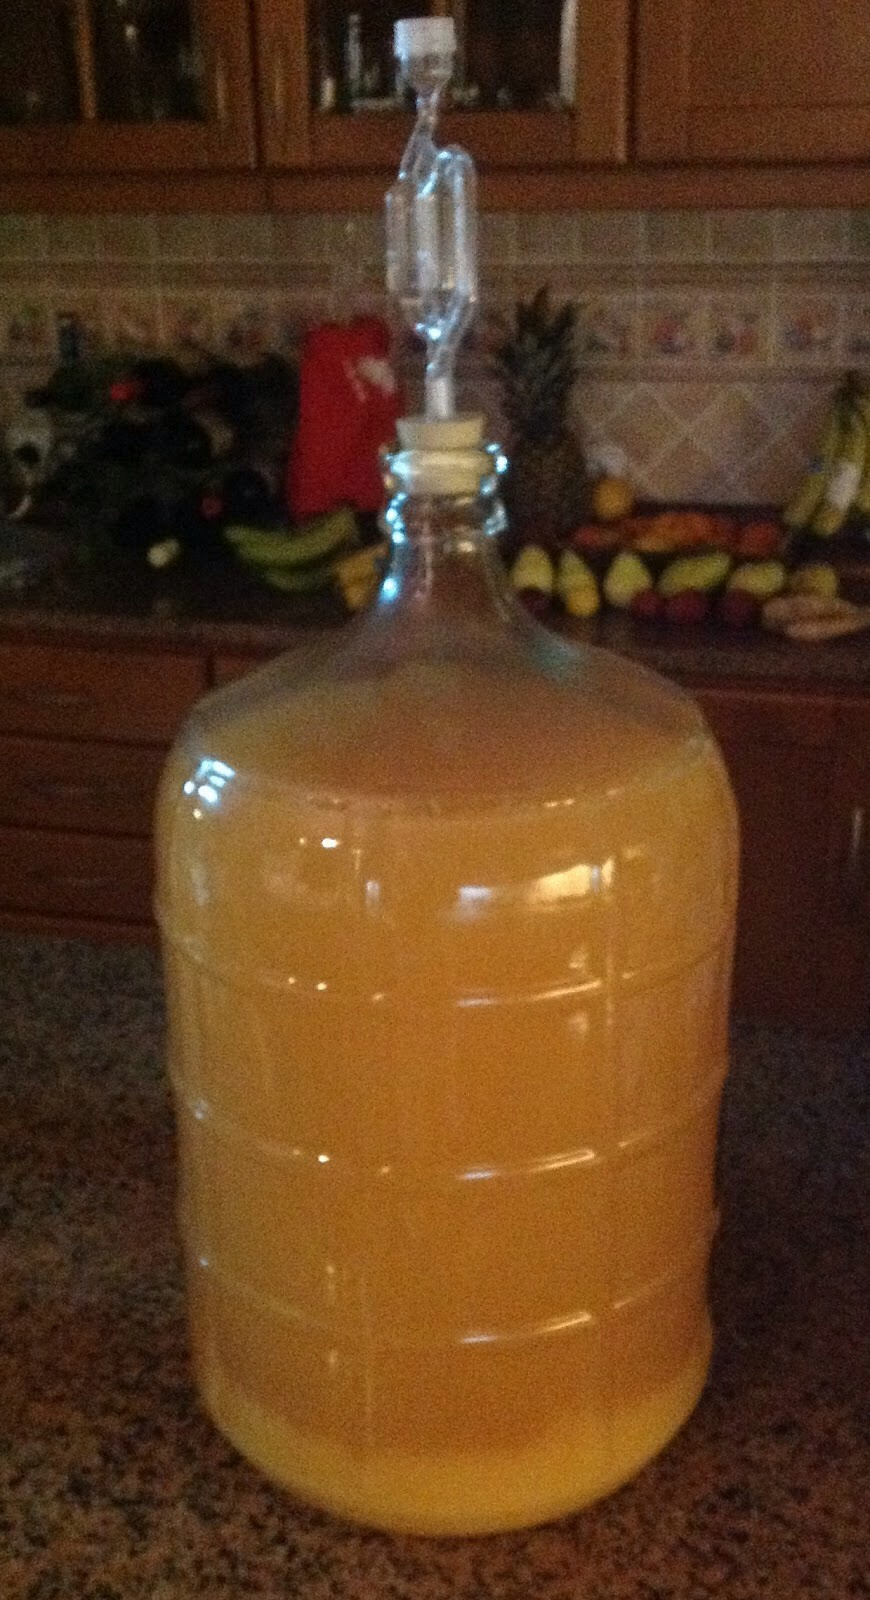 Mead: ingredients are pretty much chlorinated water, wine yeast, honey and a fermentation bucket. You can find some really great tutorials online if this is something you'd like to pursue.